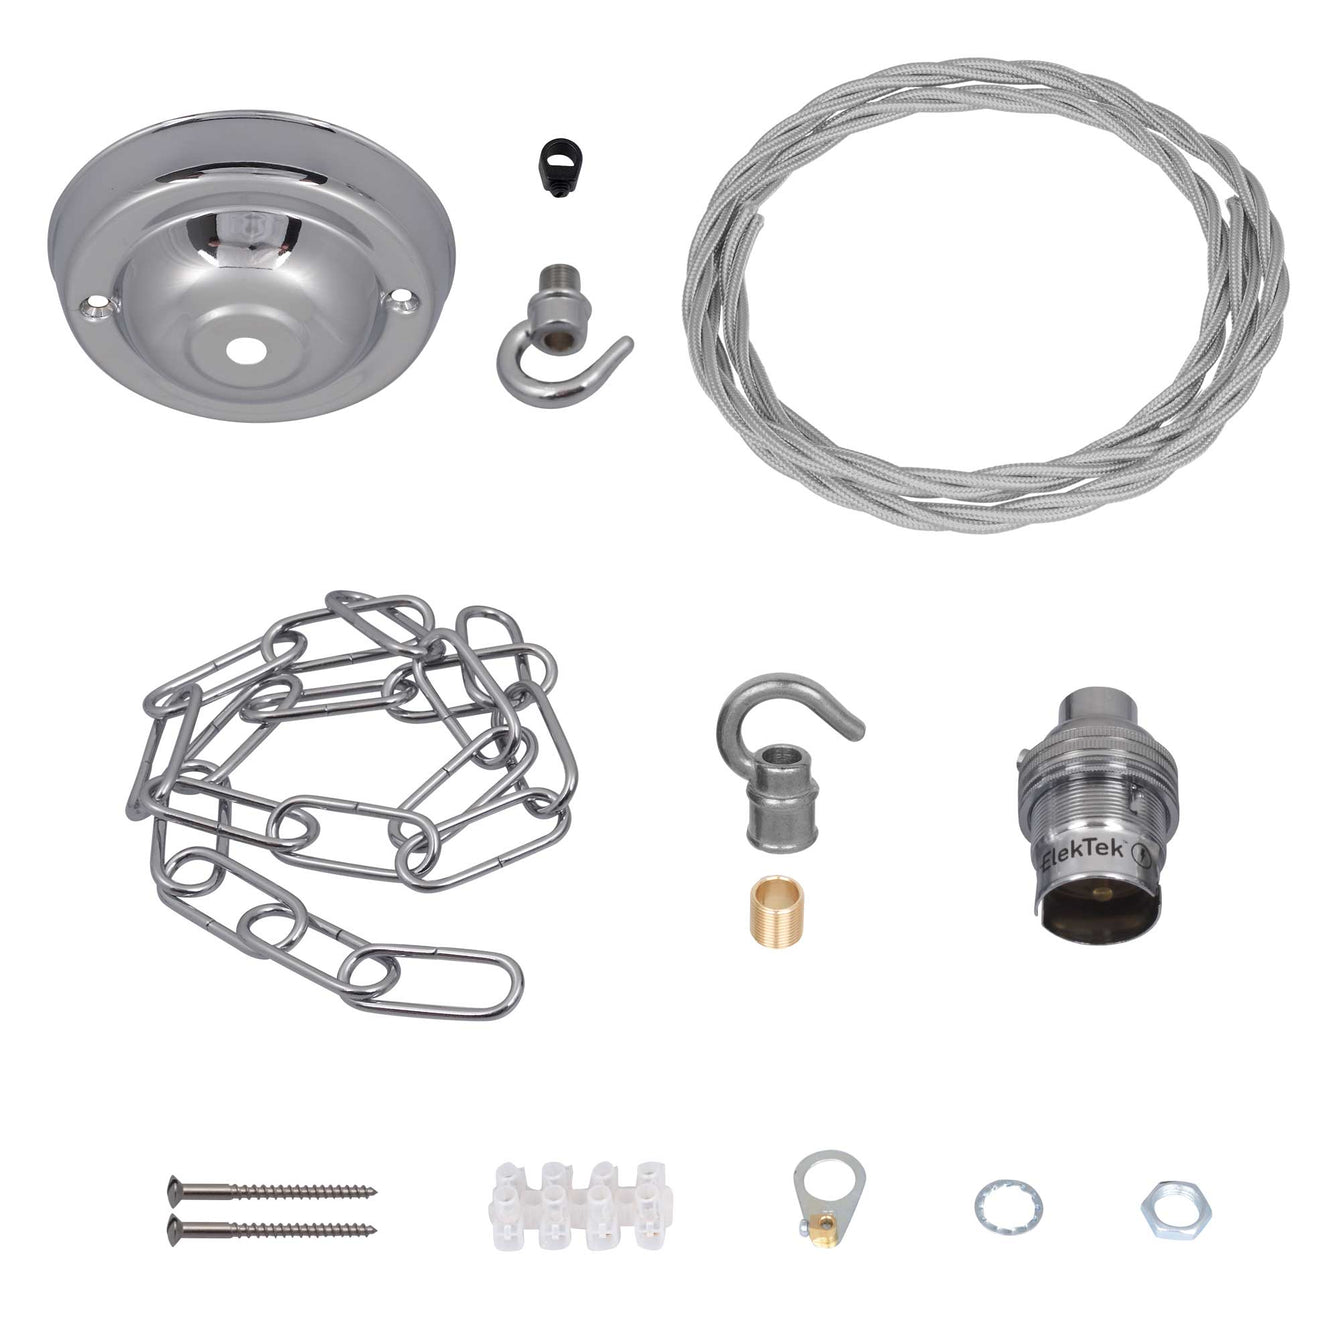 ElekTek Premium Pendant Light Kit DIY 108mm Ceiling Rose, Chain, Twisted Flex and Lamp Holder B22 Hook - Buy It Better